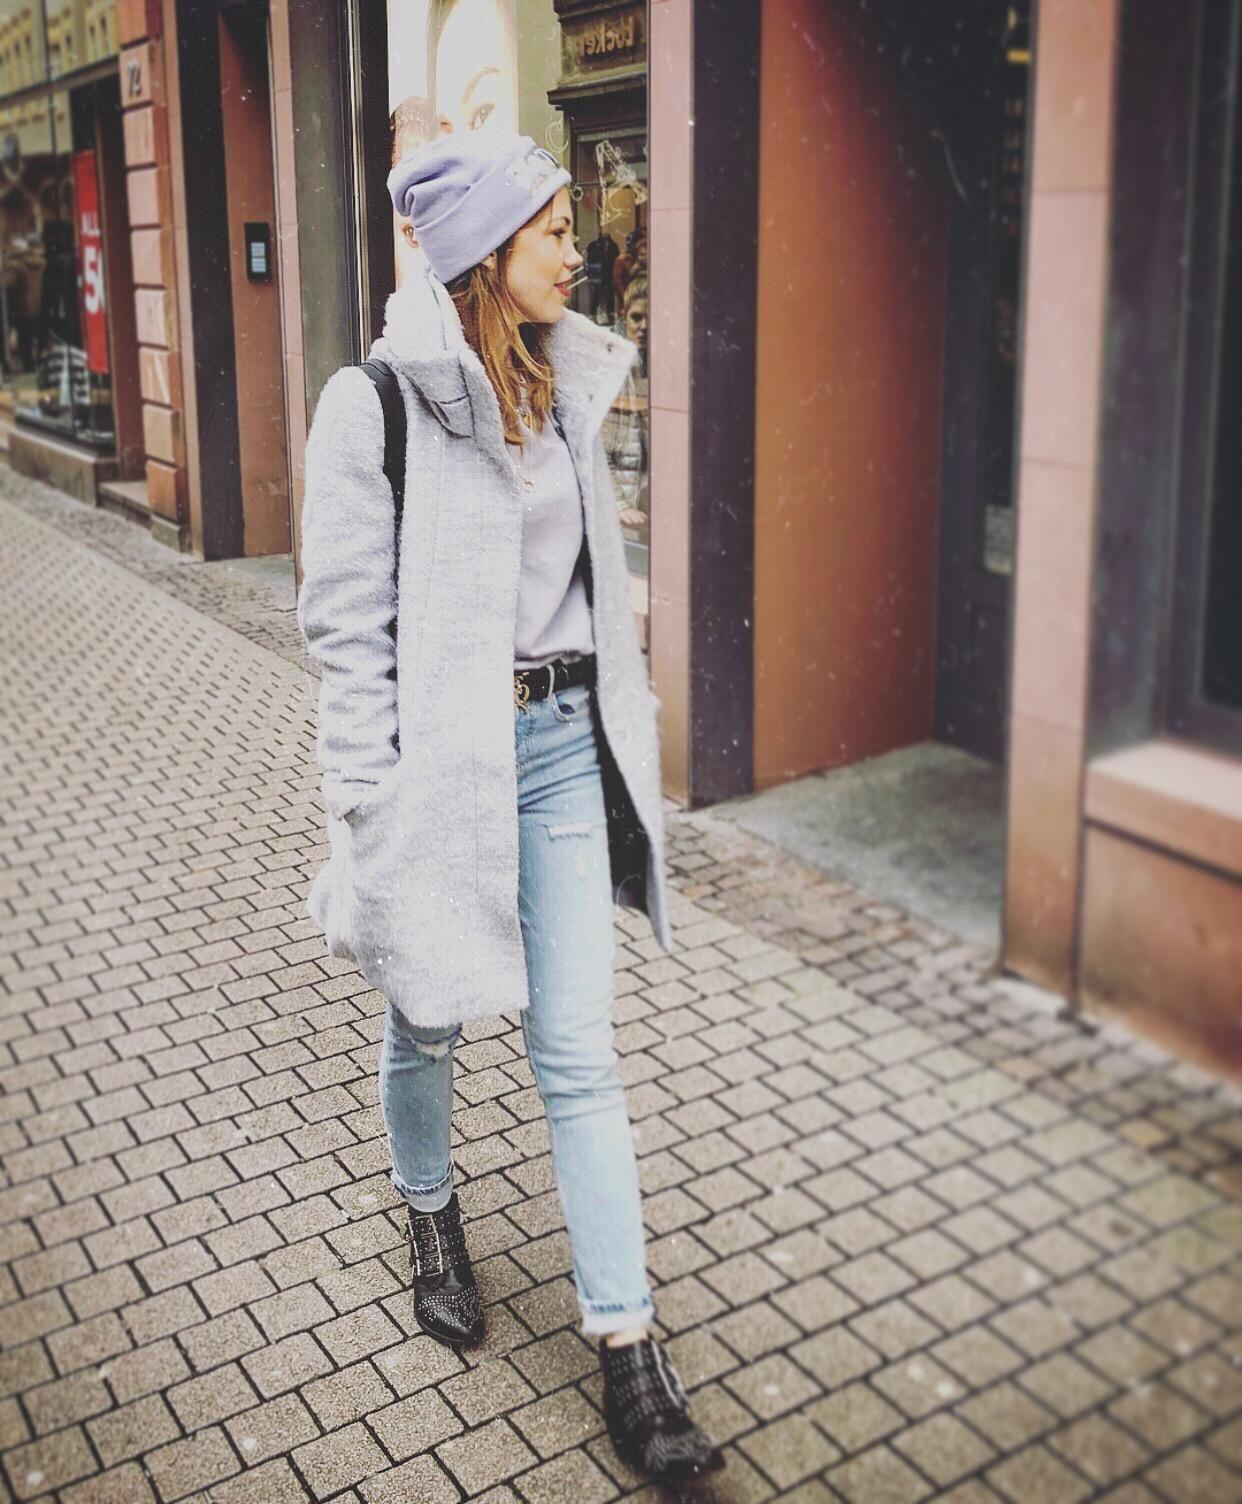 Streets🙋🏻‍♀️ #streetstyle #winterfashion #ootd #denim